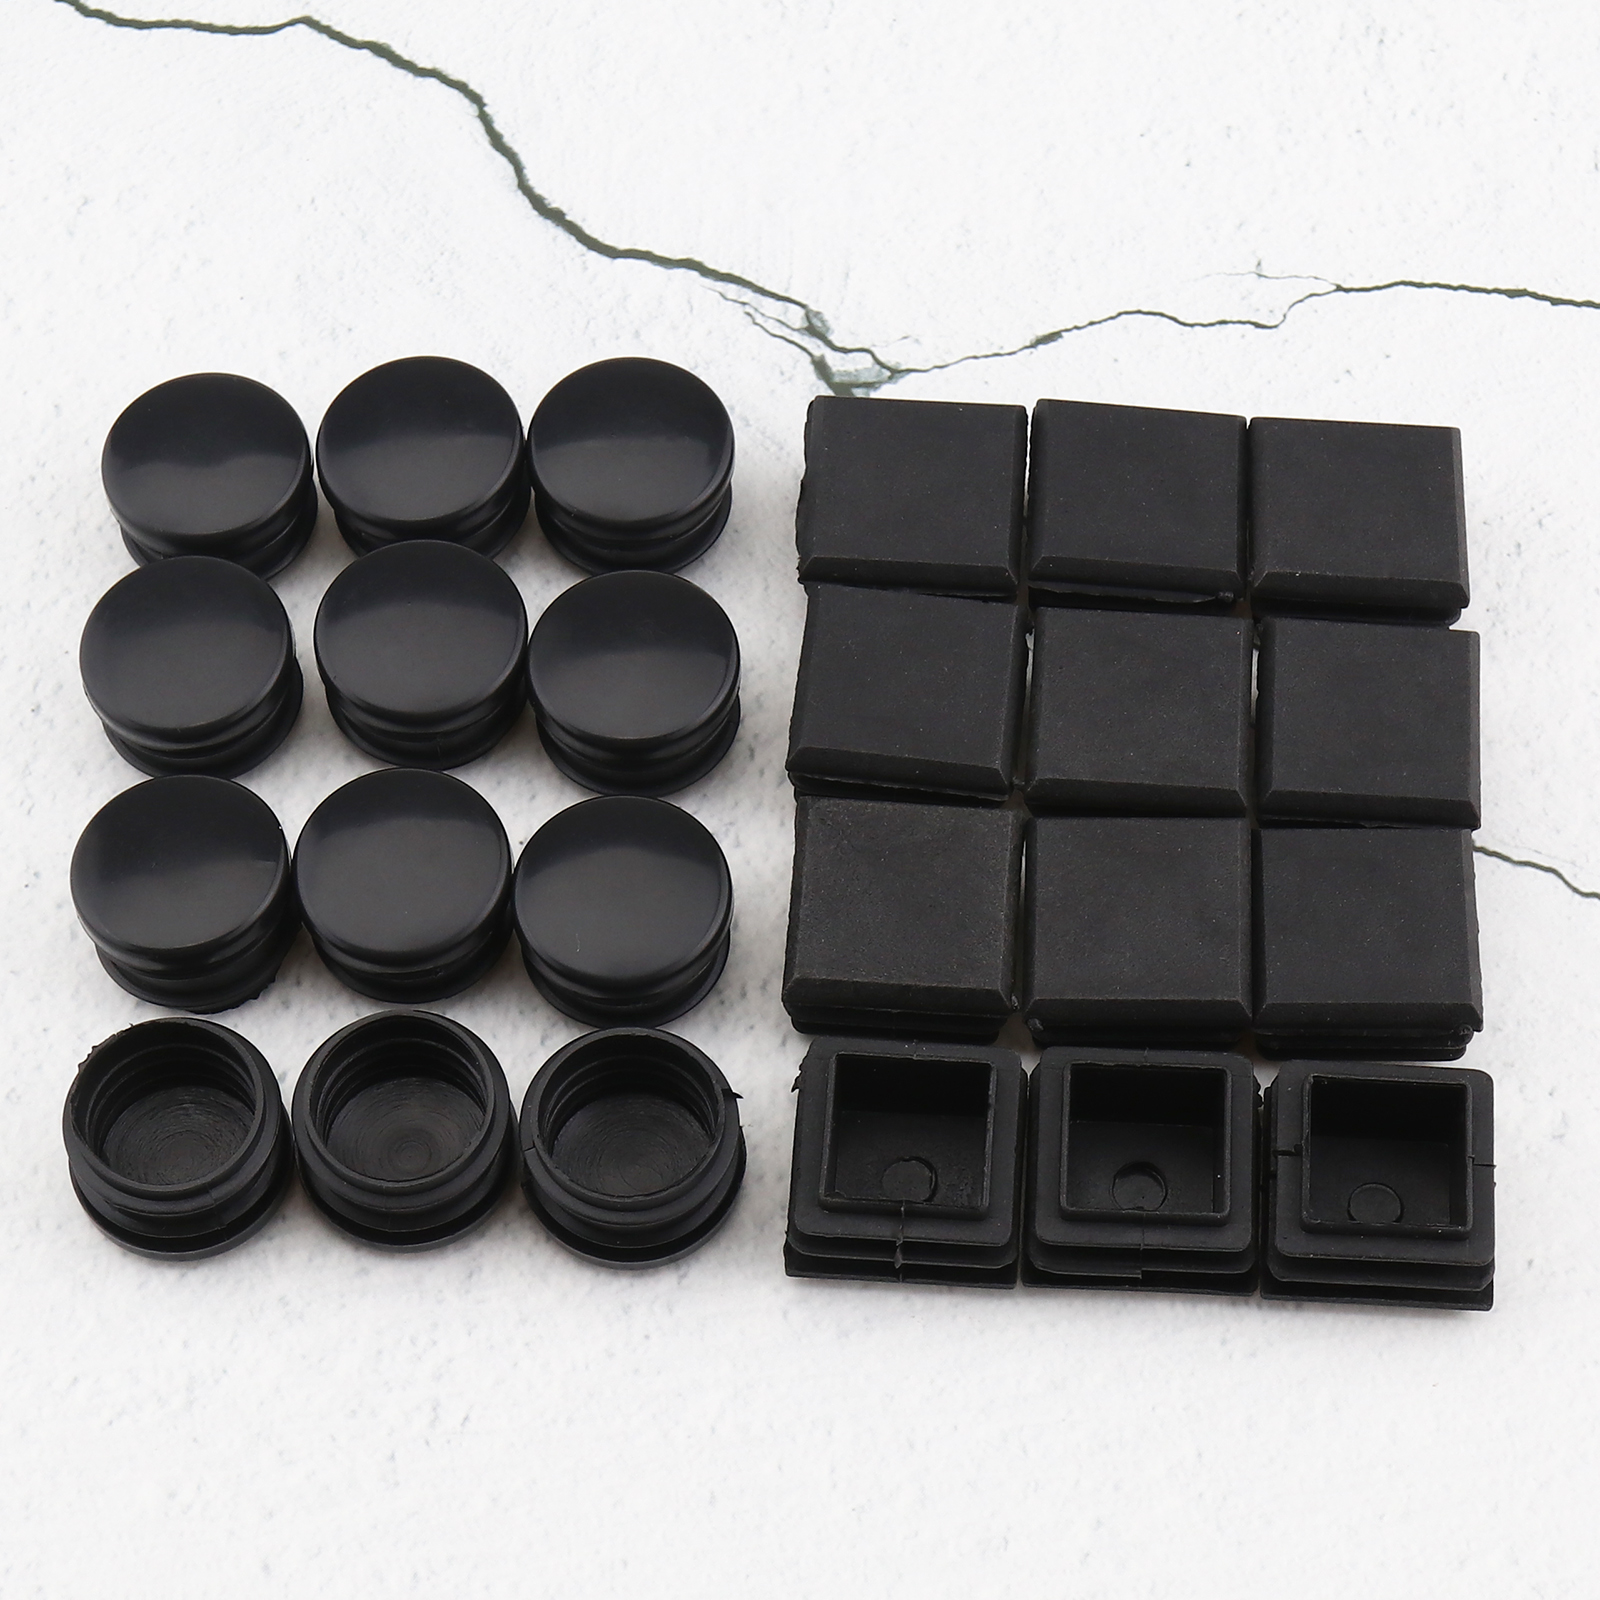 10x PE Plastic Round Chair Leg Caps Covers Rubber Feet Protector Pad Table Cover